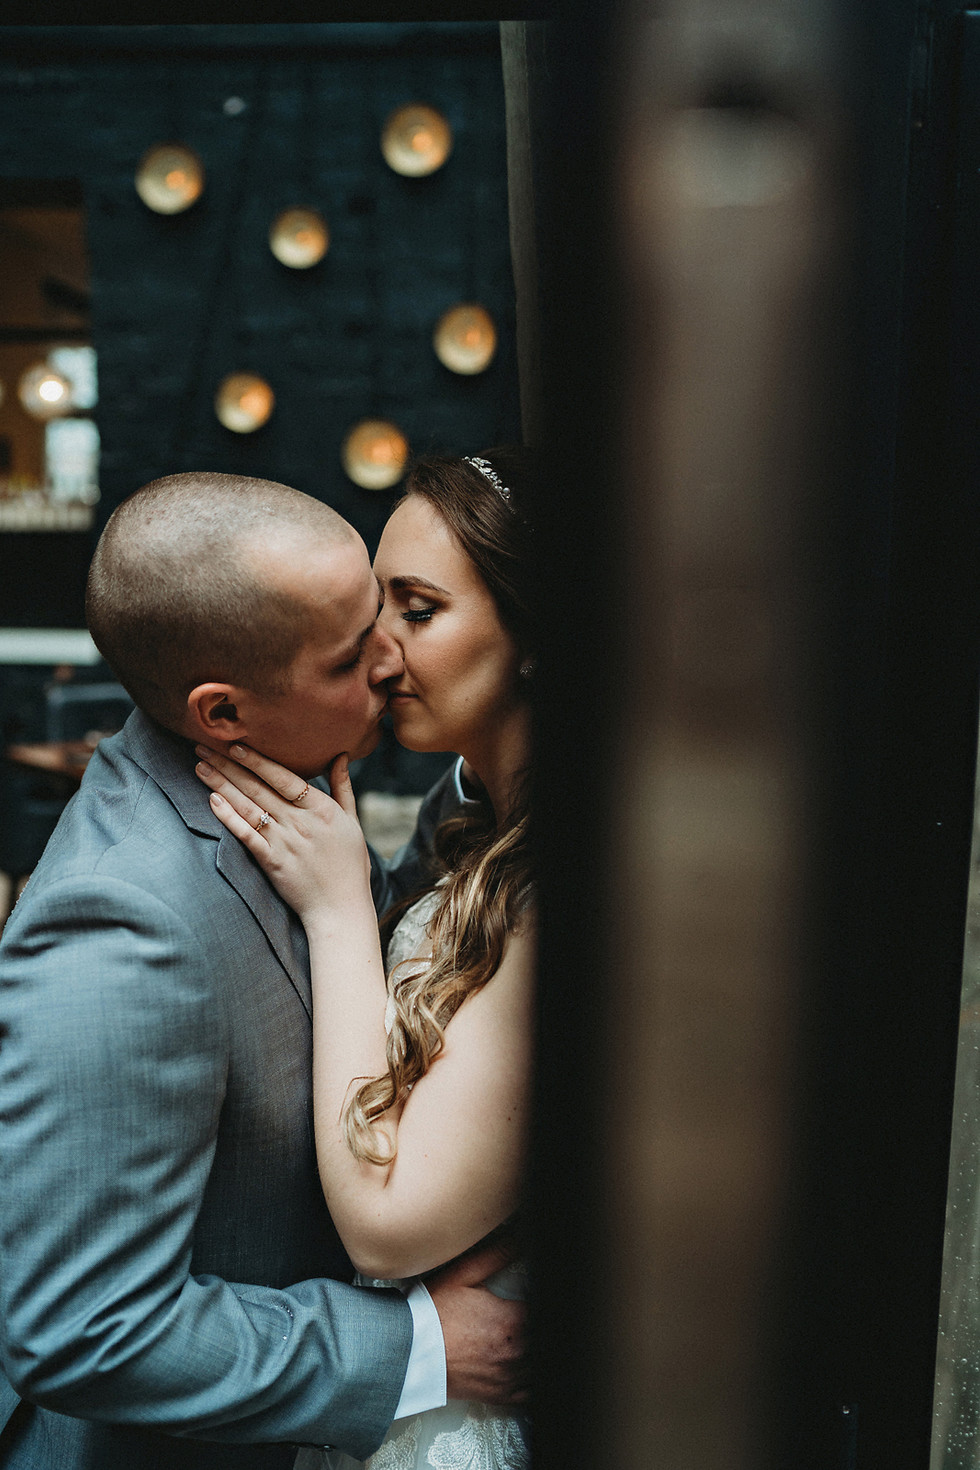 Austin + Hannah || Hotel Covington Wedding, The Madison Event Center Cincinnati, OHIO